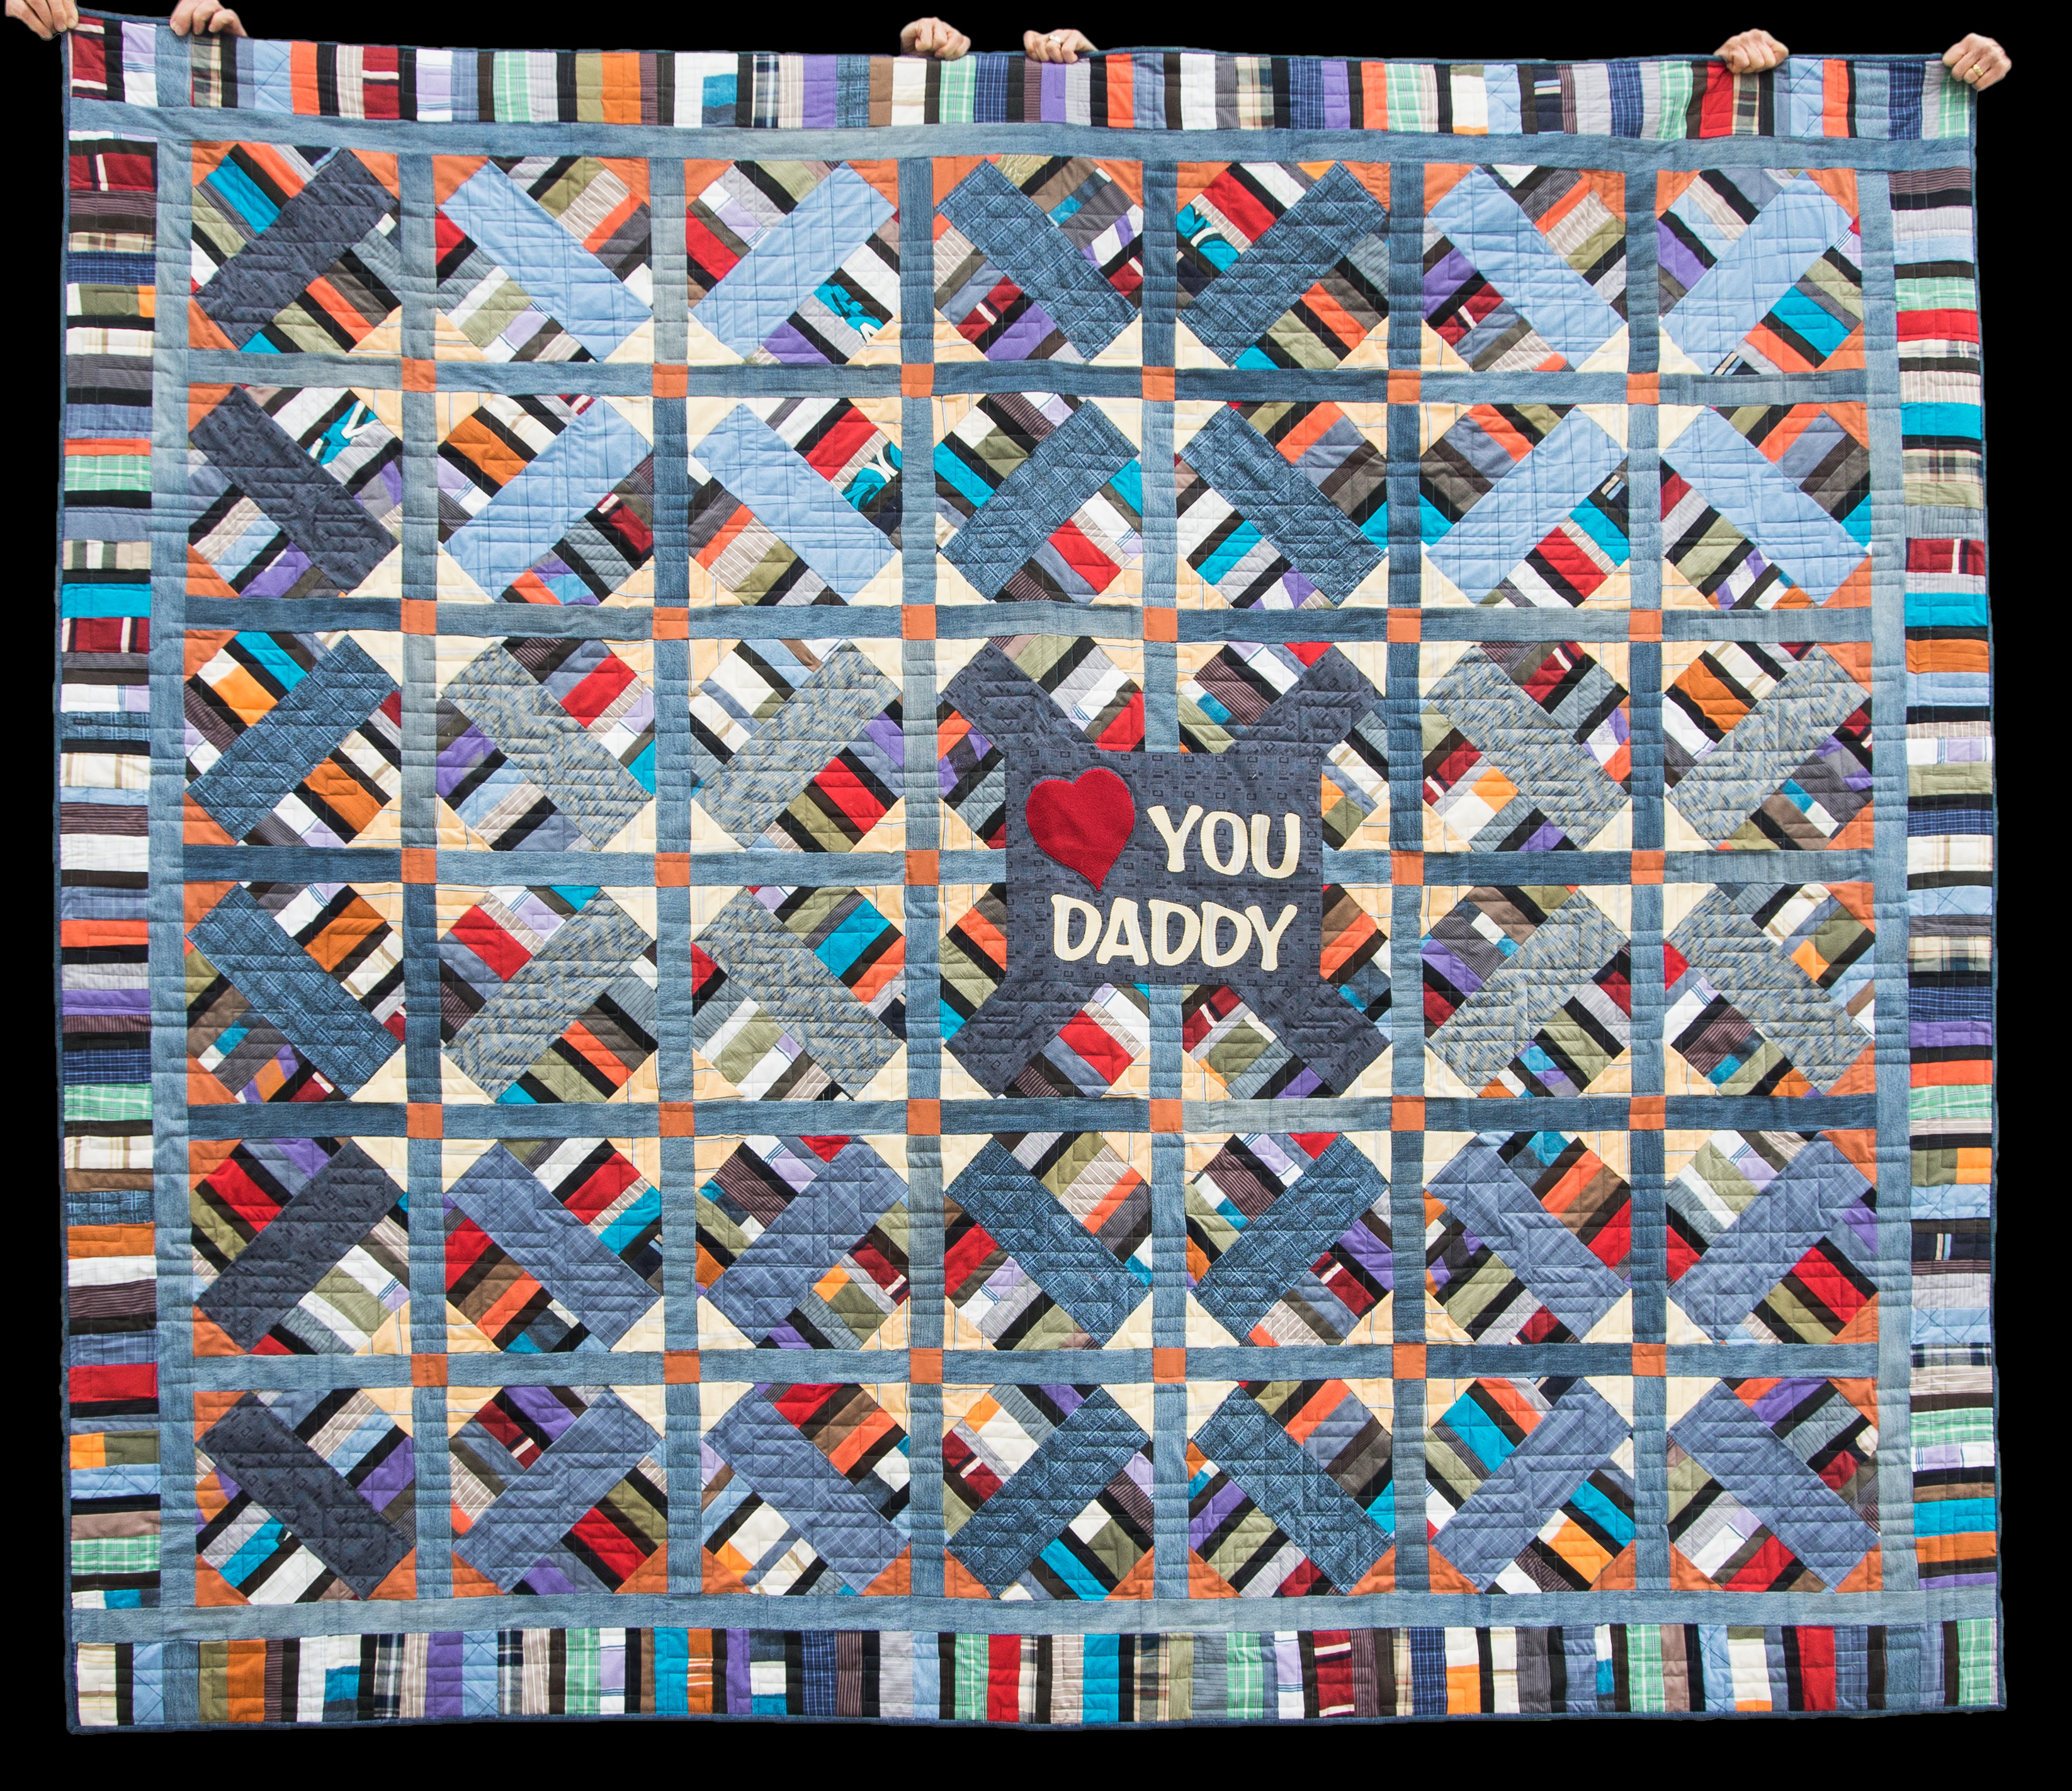 A Memory Quilt Made of Clothes | Quilts By Jen : sew and quilt barrie - Adamdwight.com